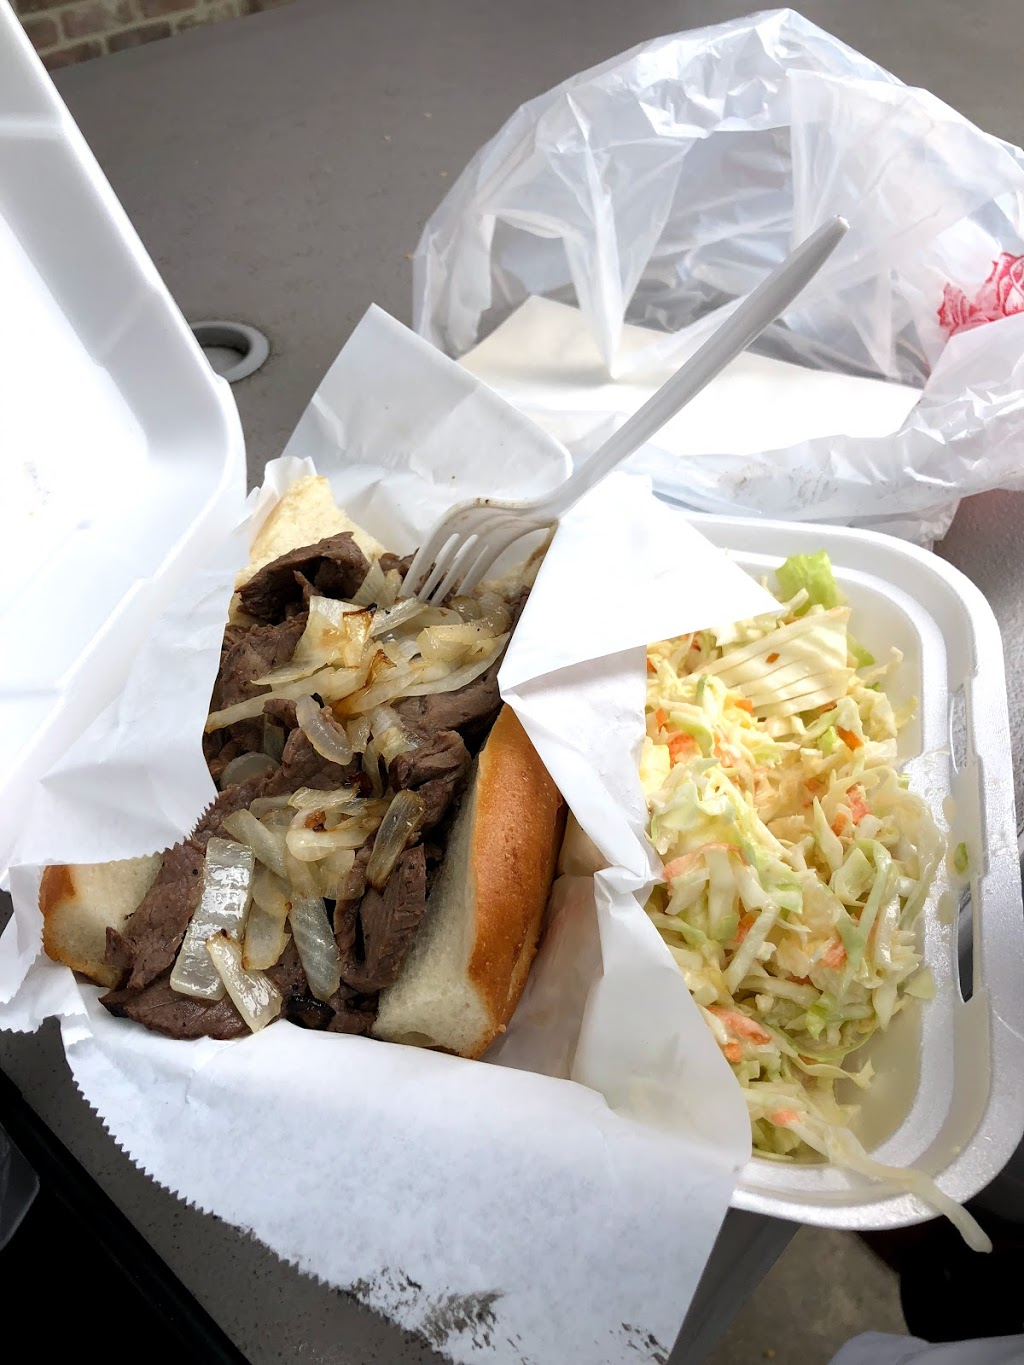 Matts Takeout - meal takeaway  | Photo 5 of 10 | Address: 790 Main St, Copperopolis, CA 95228, USA | Phone: (209) 785-8181